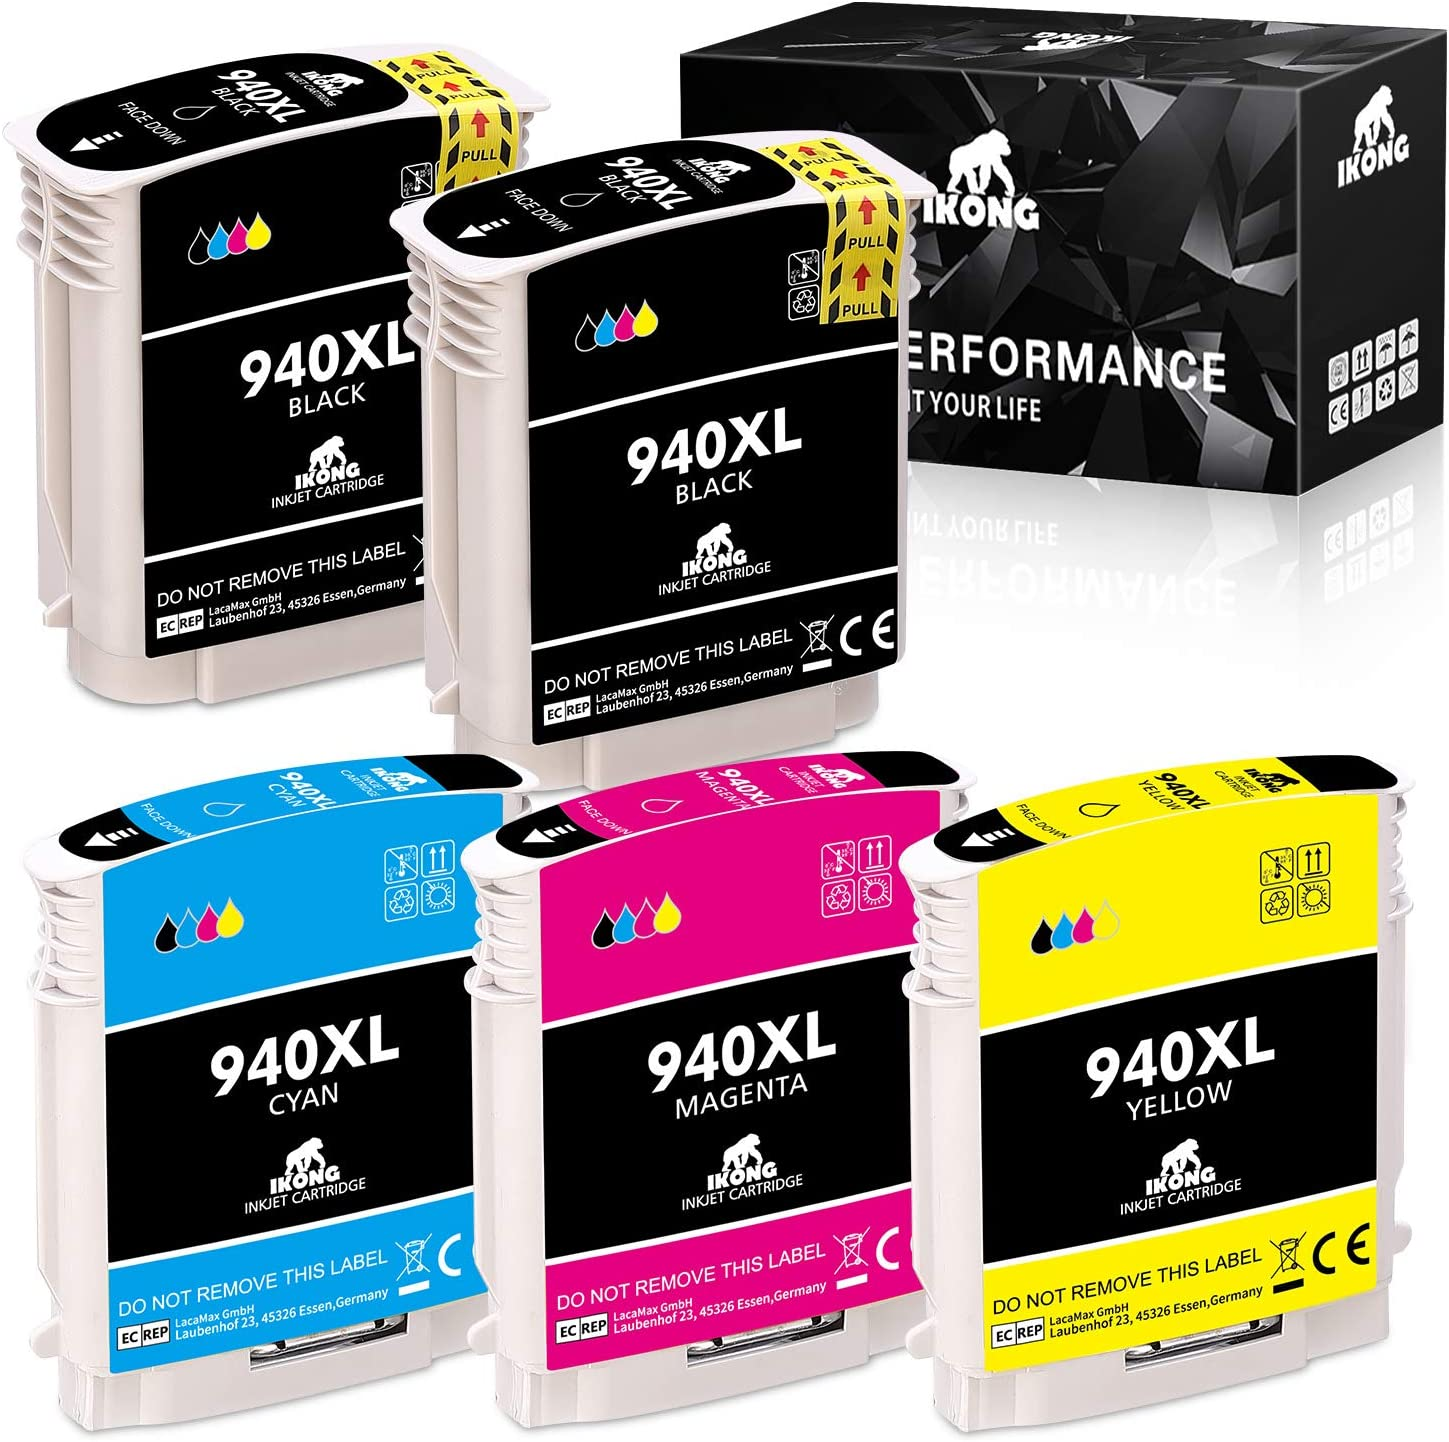 5-Pack IKONG 940XL High Yield Remanufactured Replacement for HP 940 Ink Cartridges use wirh HP Officejet Pro 8000 8500 8500A 8500A Plus Printer